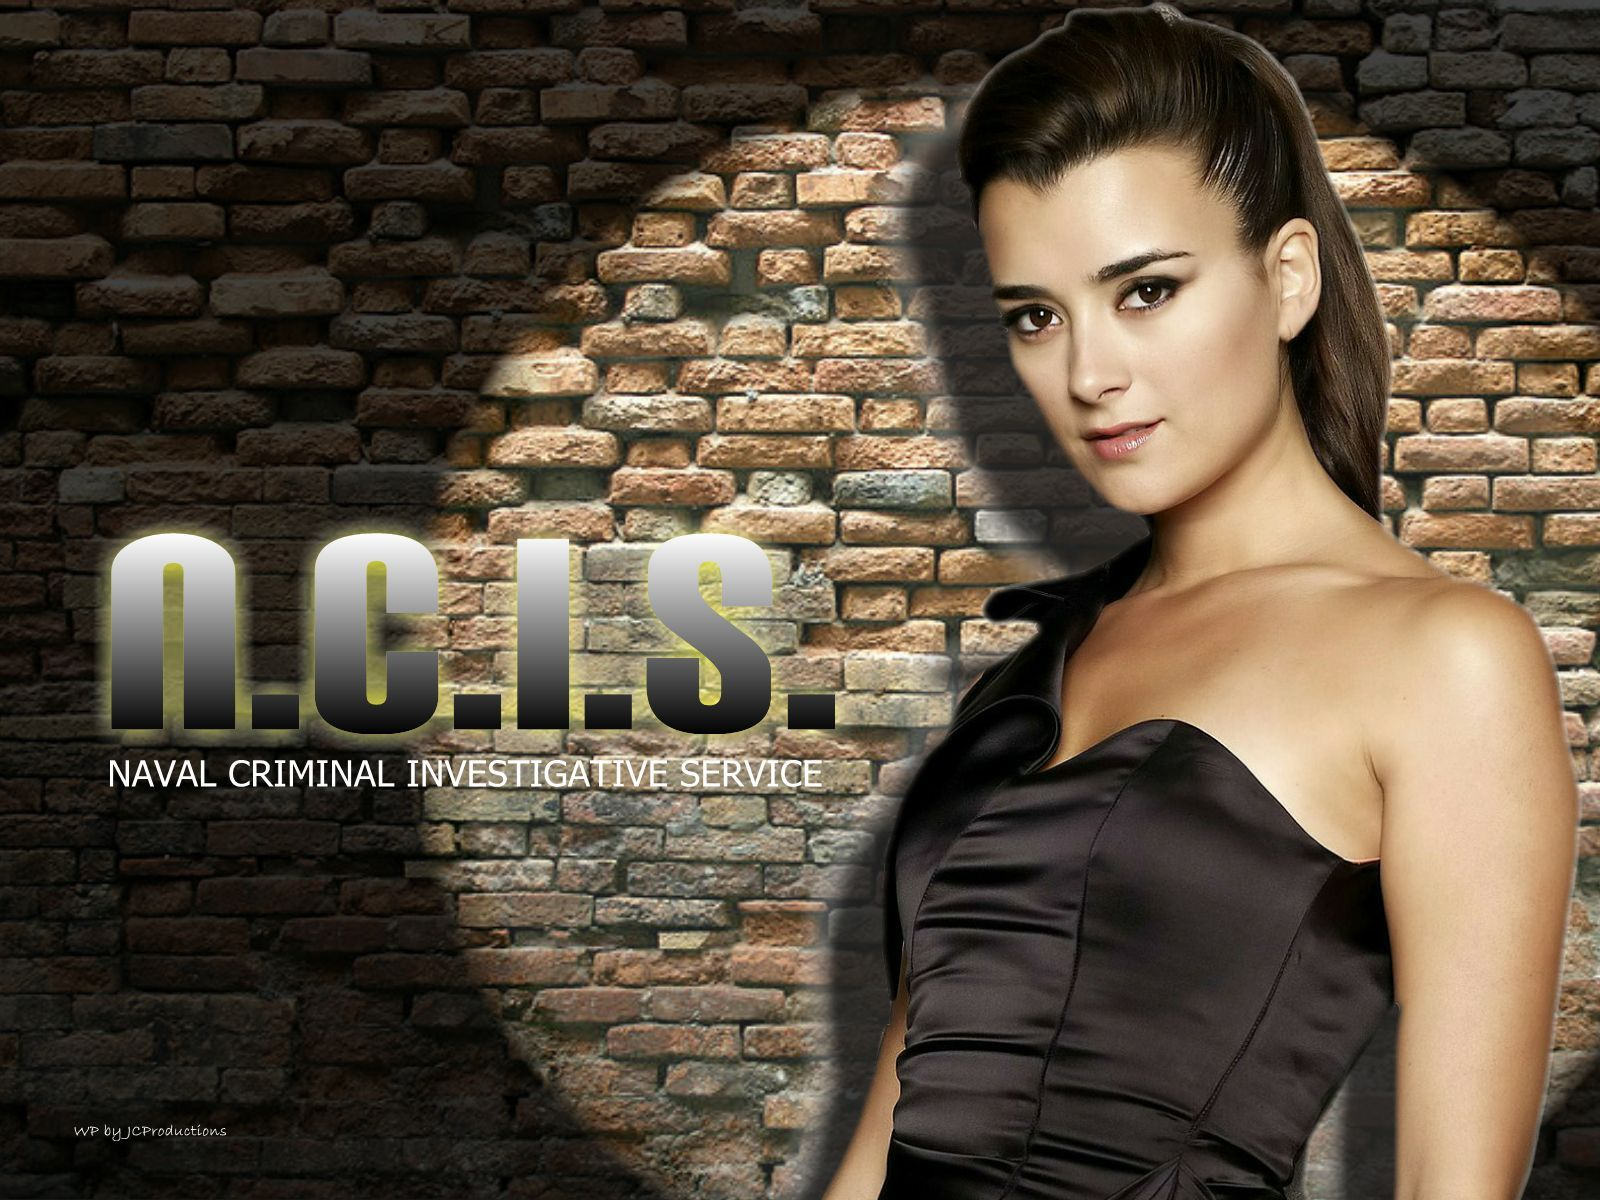 NCIS Girls Cote de Pablo aka Ziva David